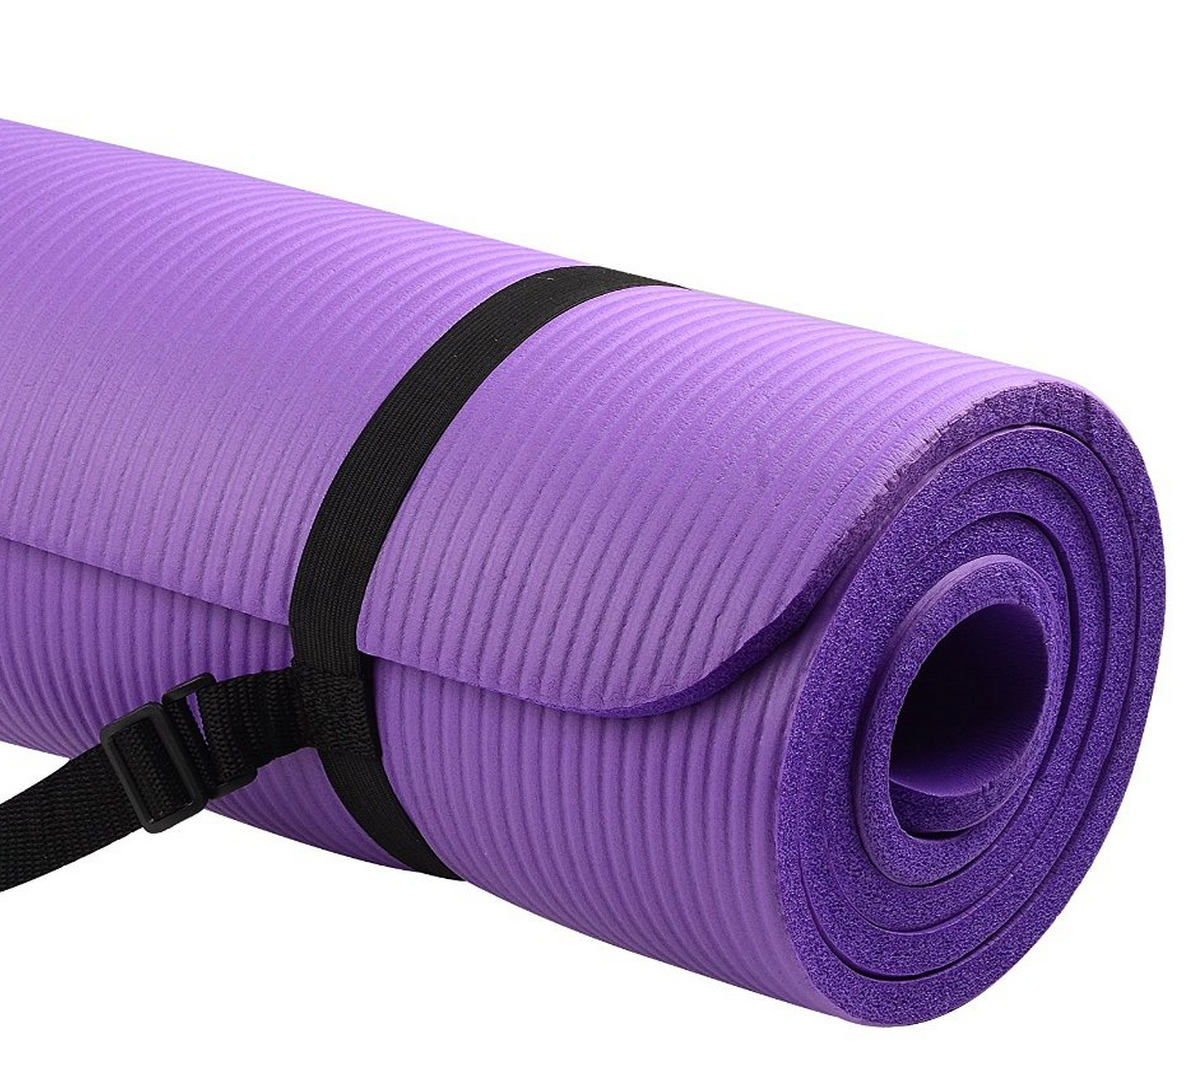 Highly Rated Yoga Mat Only $19.95 (Reg. $39.95